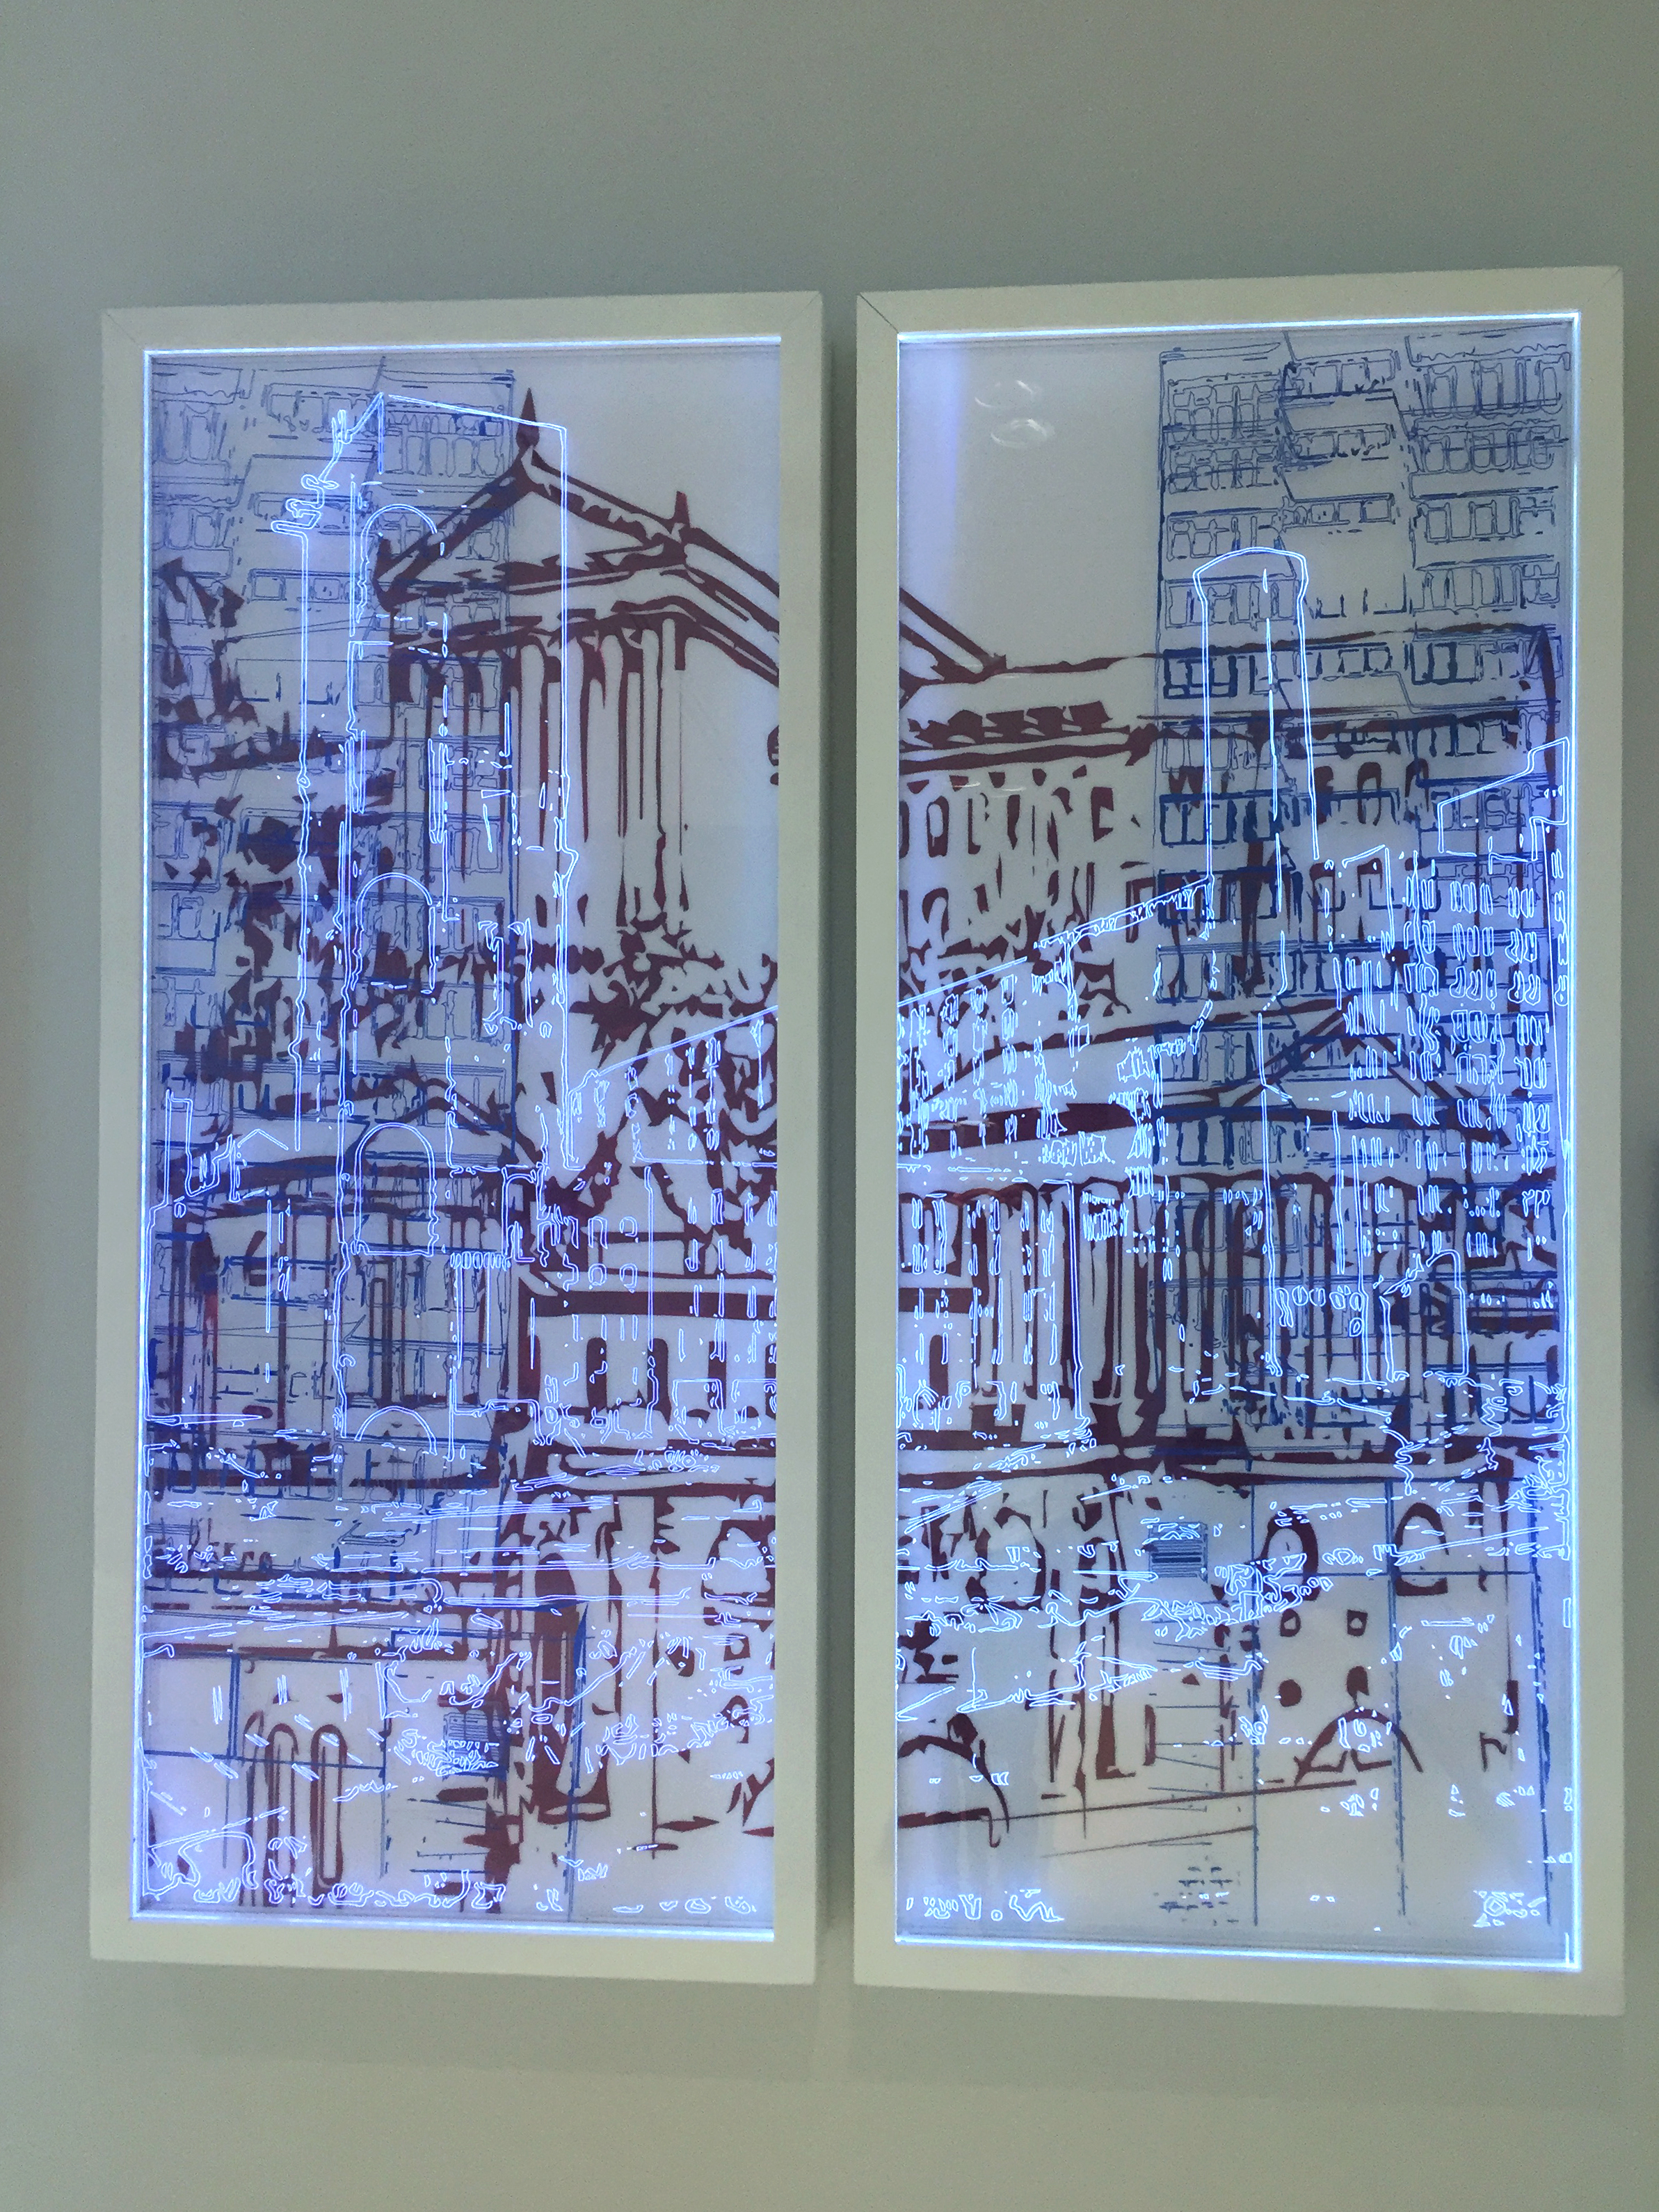 The Benjamin Franklin Parkway Series (Diptych I)